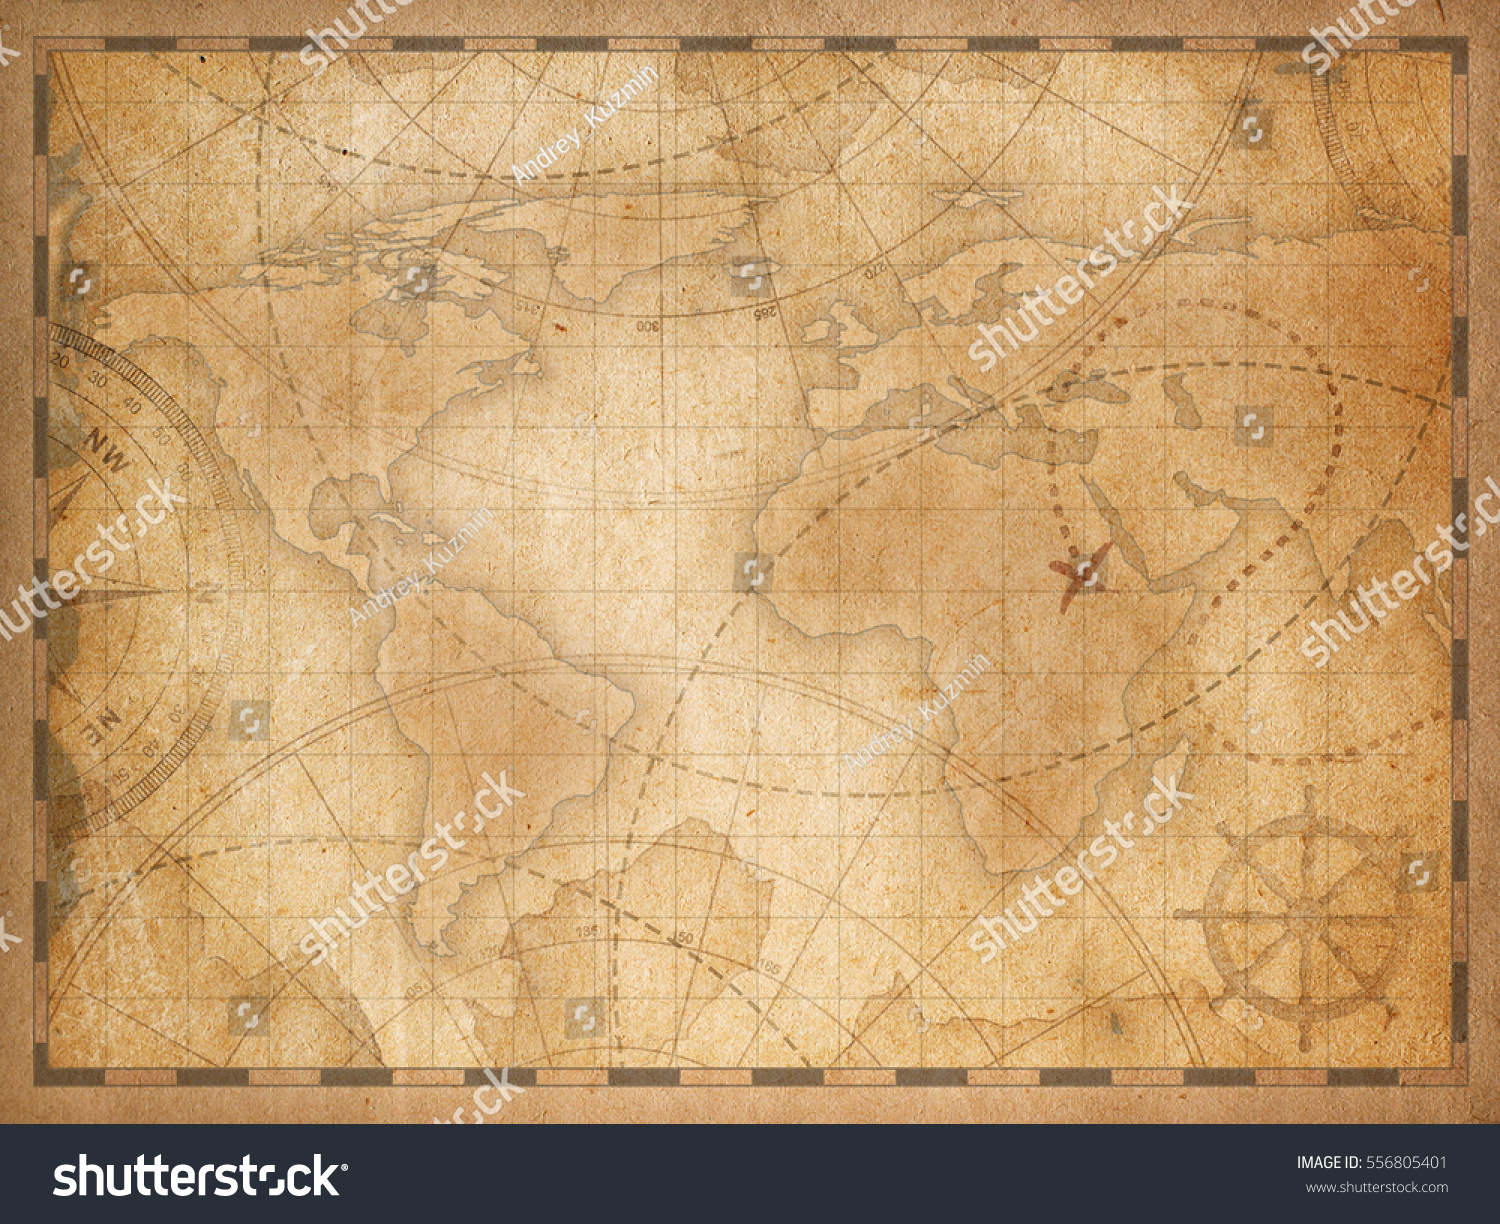 Royalty free old world map background 556805401 stock photo old world map background 556805401 gumiabroncs Gallery